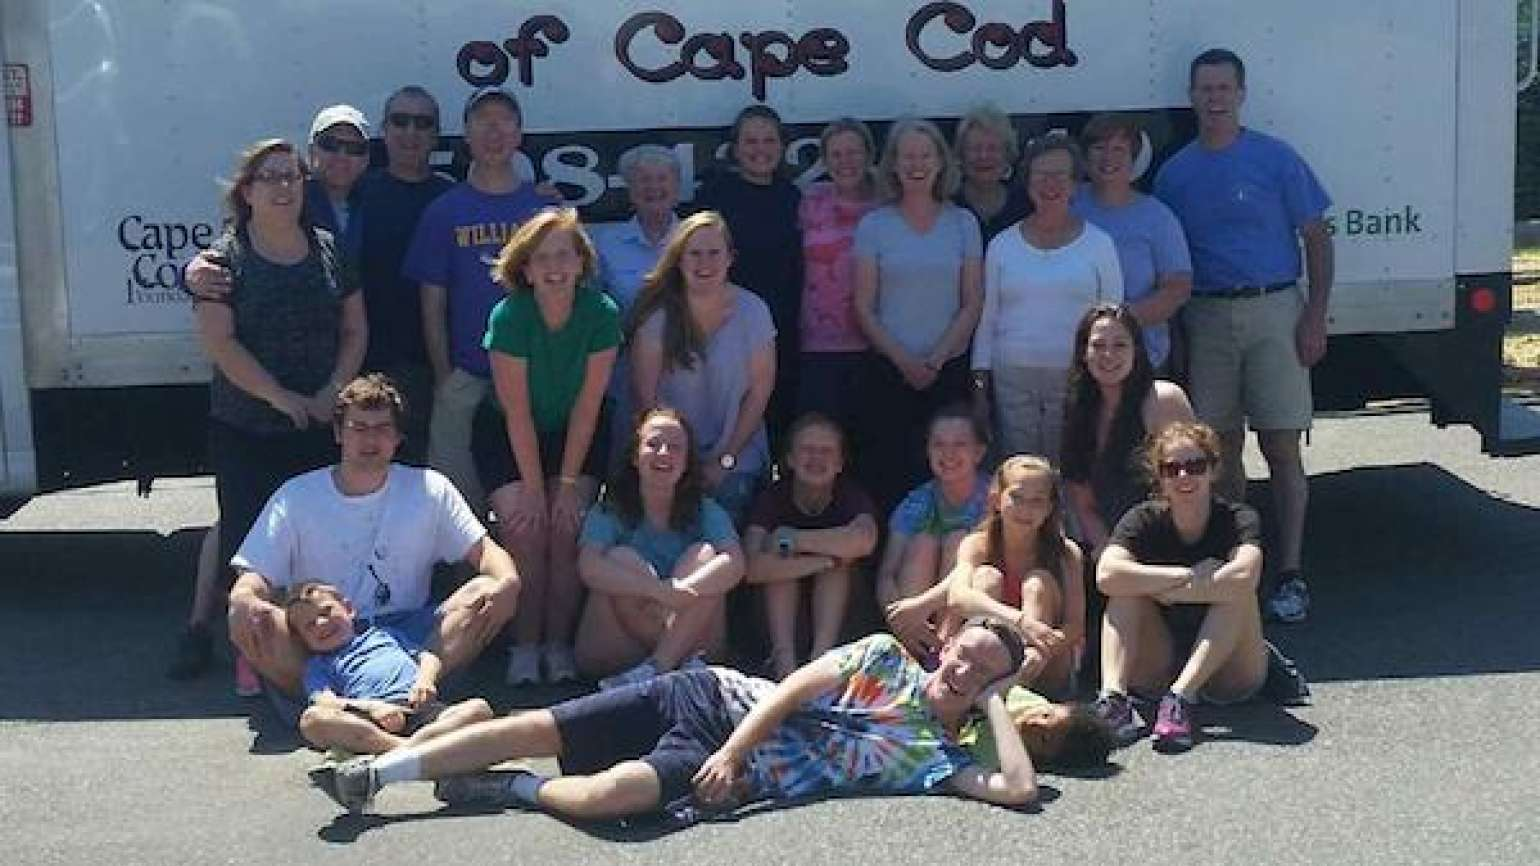 The family of Dr. Norman Vincent Peale gathers for a reunion and to do good works for The Pantry of Cape Cod.